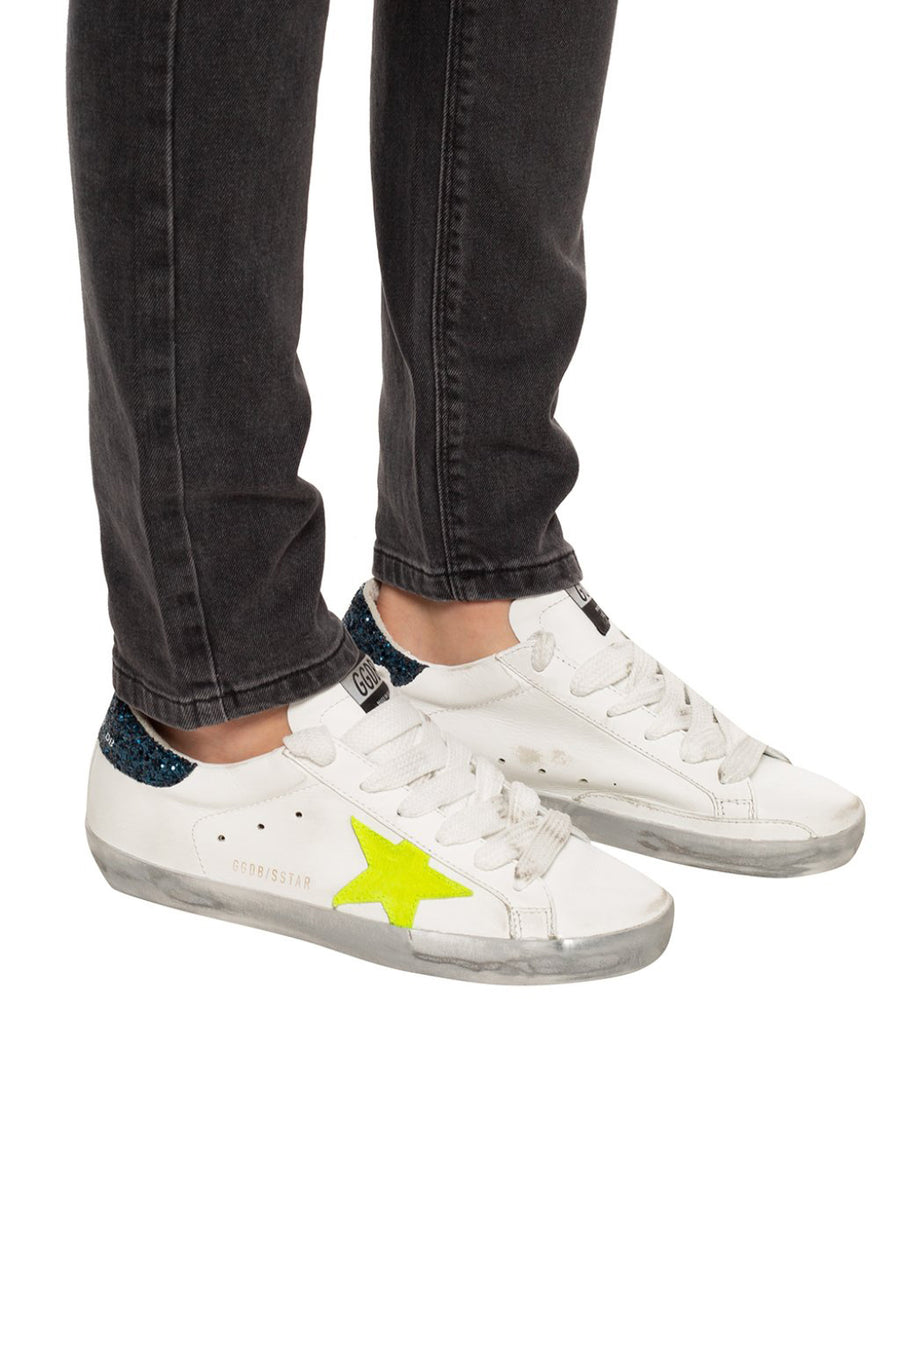 Superstar - White Leather Sparkle Yellow Star - Pavilion